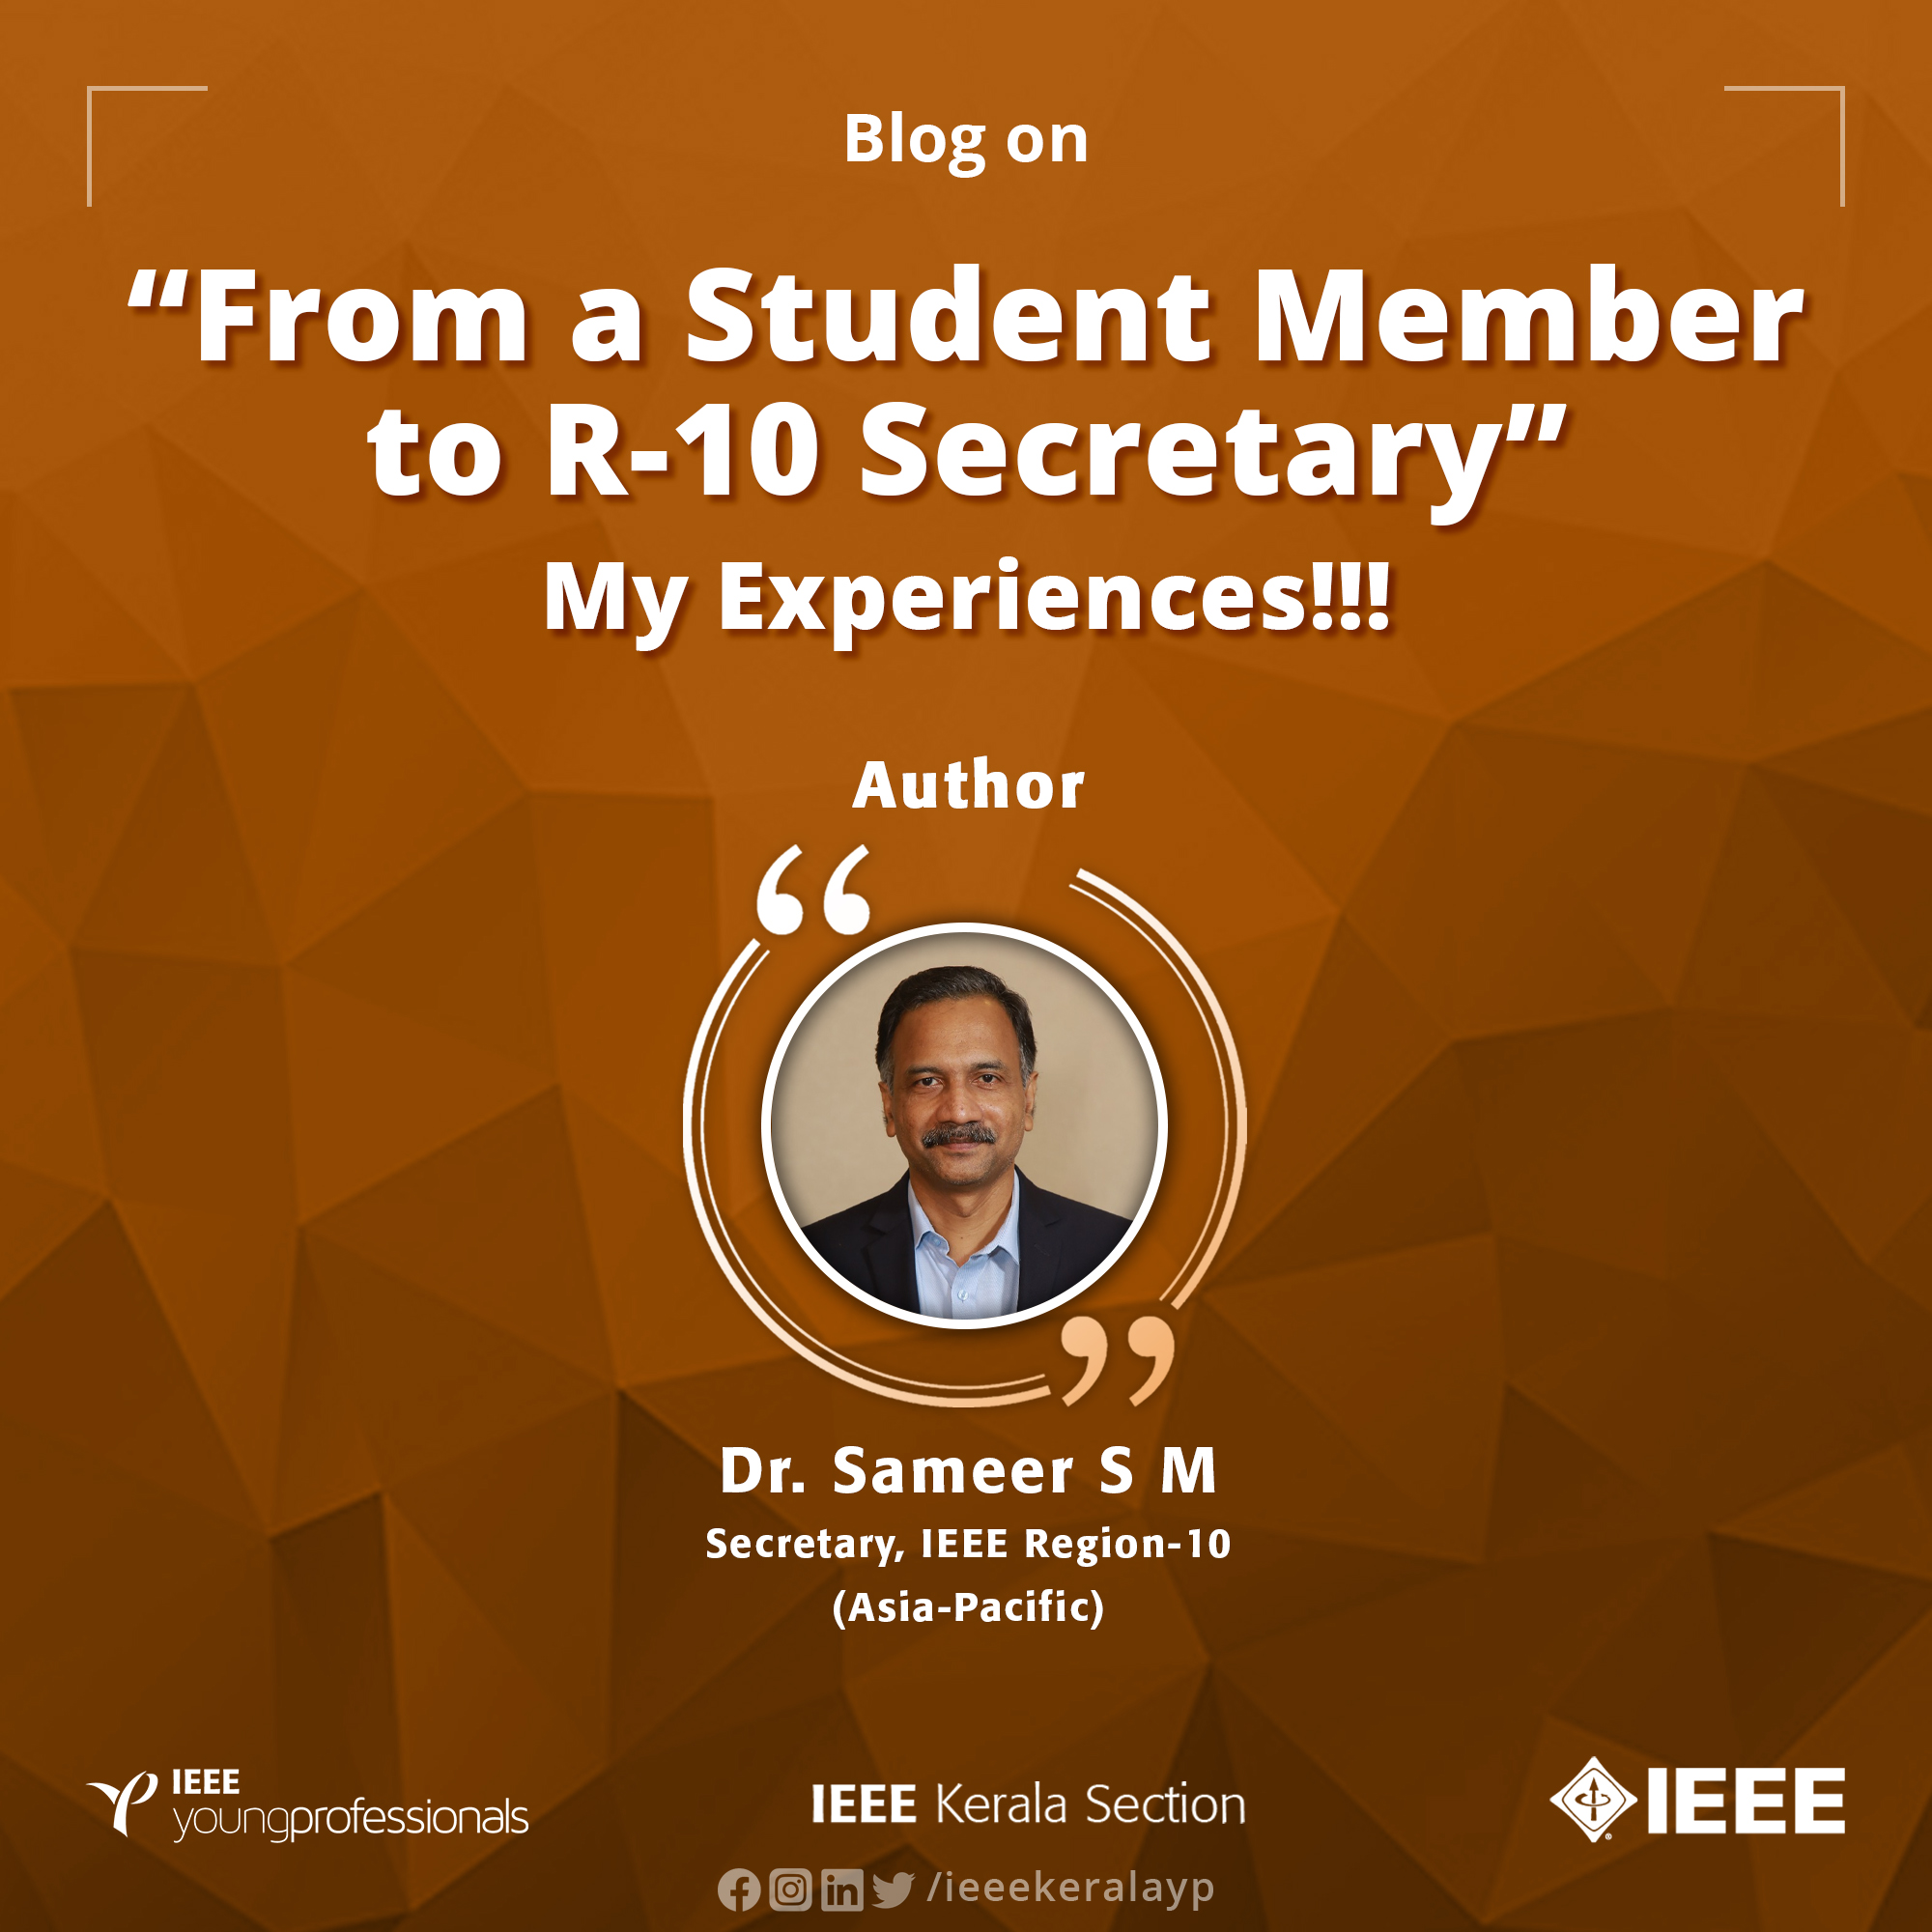 From a Student Member to R-10 Secretary, My IEEE Experiences!!!